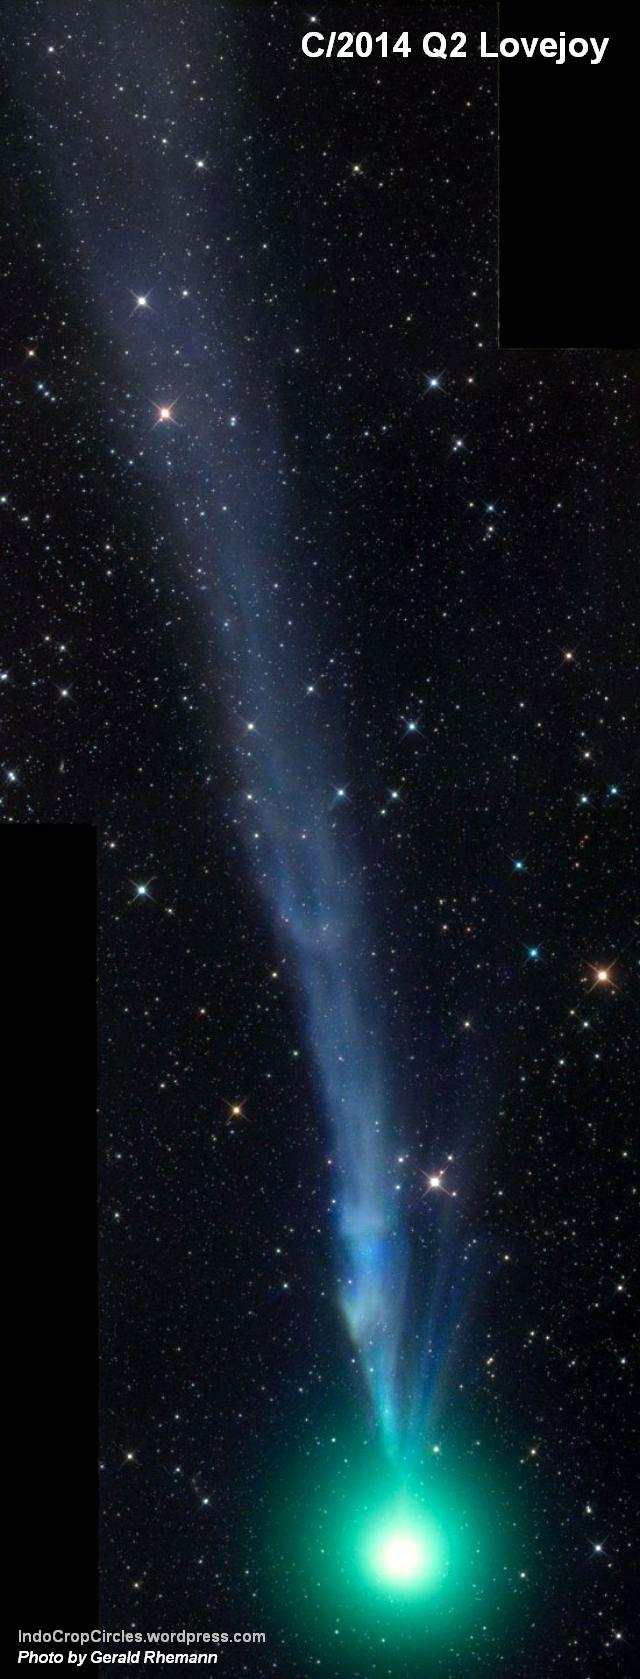 comet-lovejoy-12-23-2014-Gerald-Rhemann-big